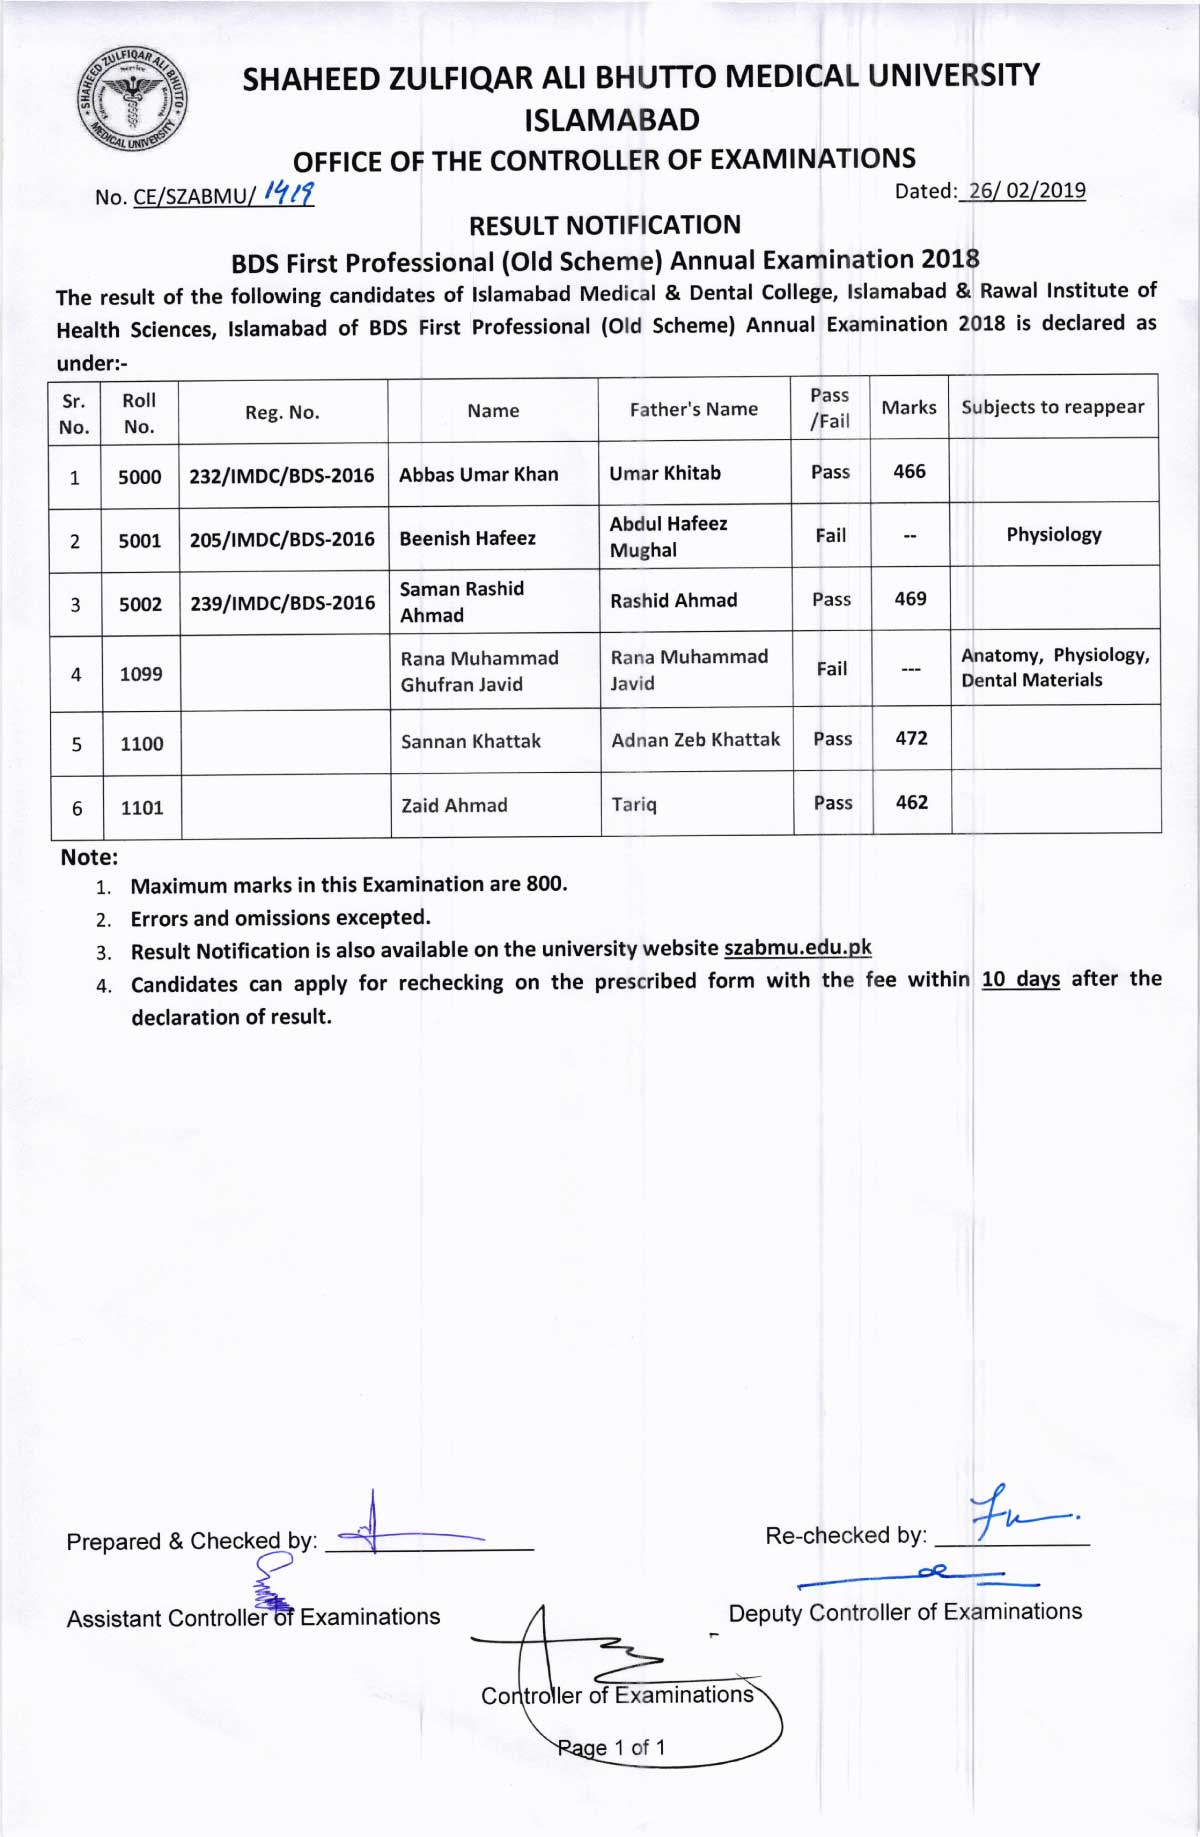 Result Notification of BDS First Professional (Old Scheme)  Annual Examination 2018